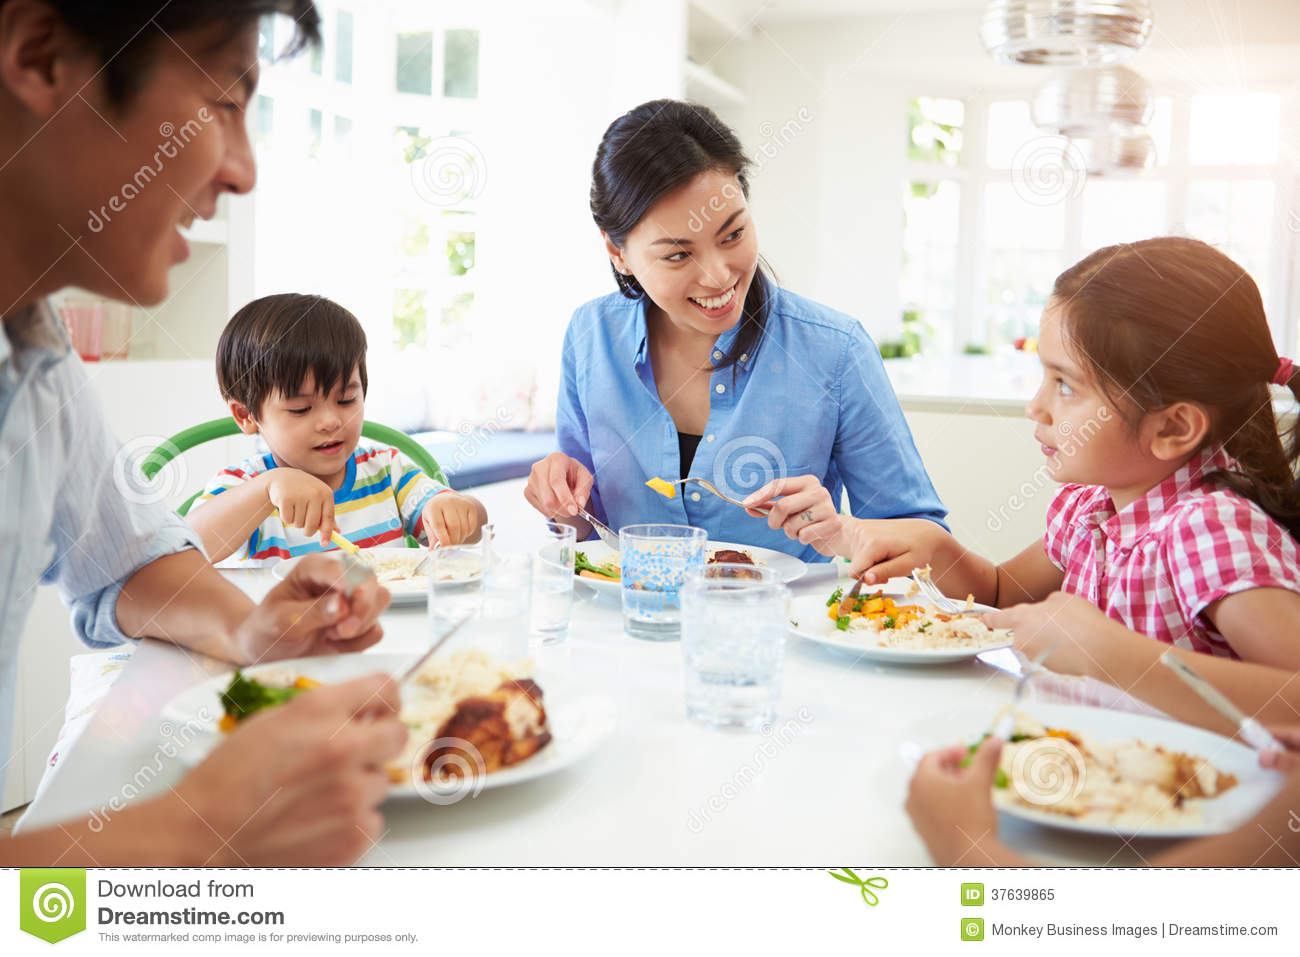 Asian Family Sitting At Table Eating Meal Together Royalty